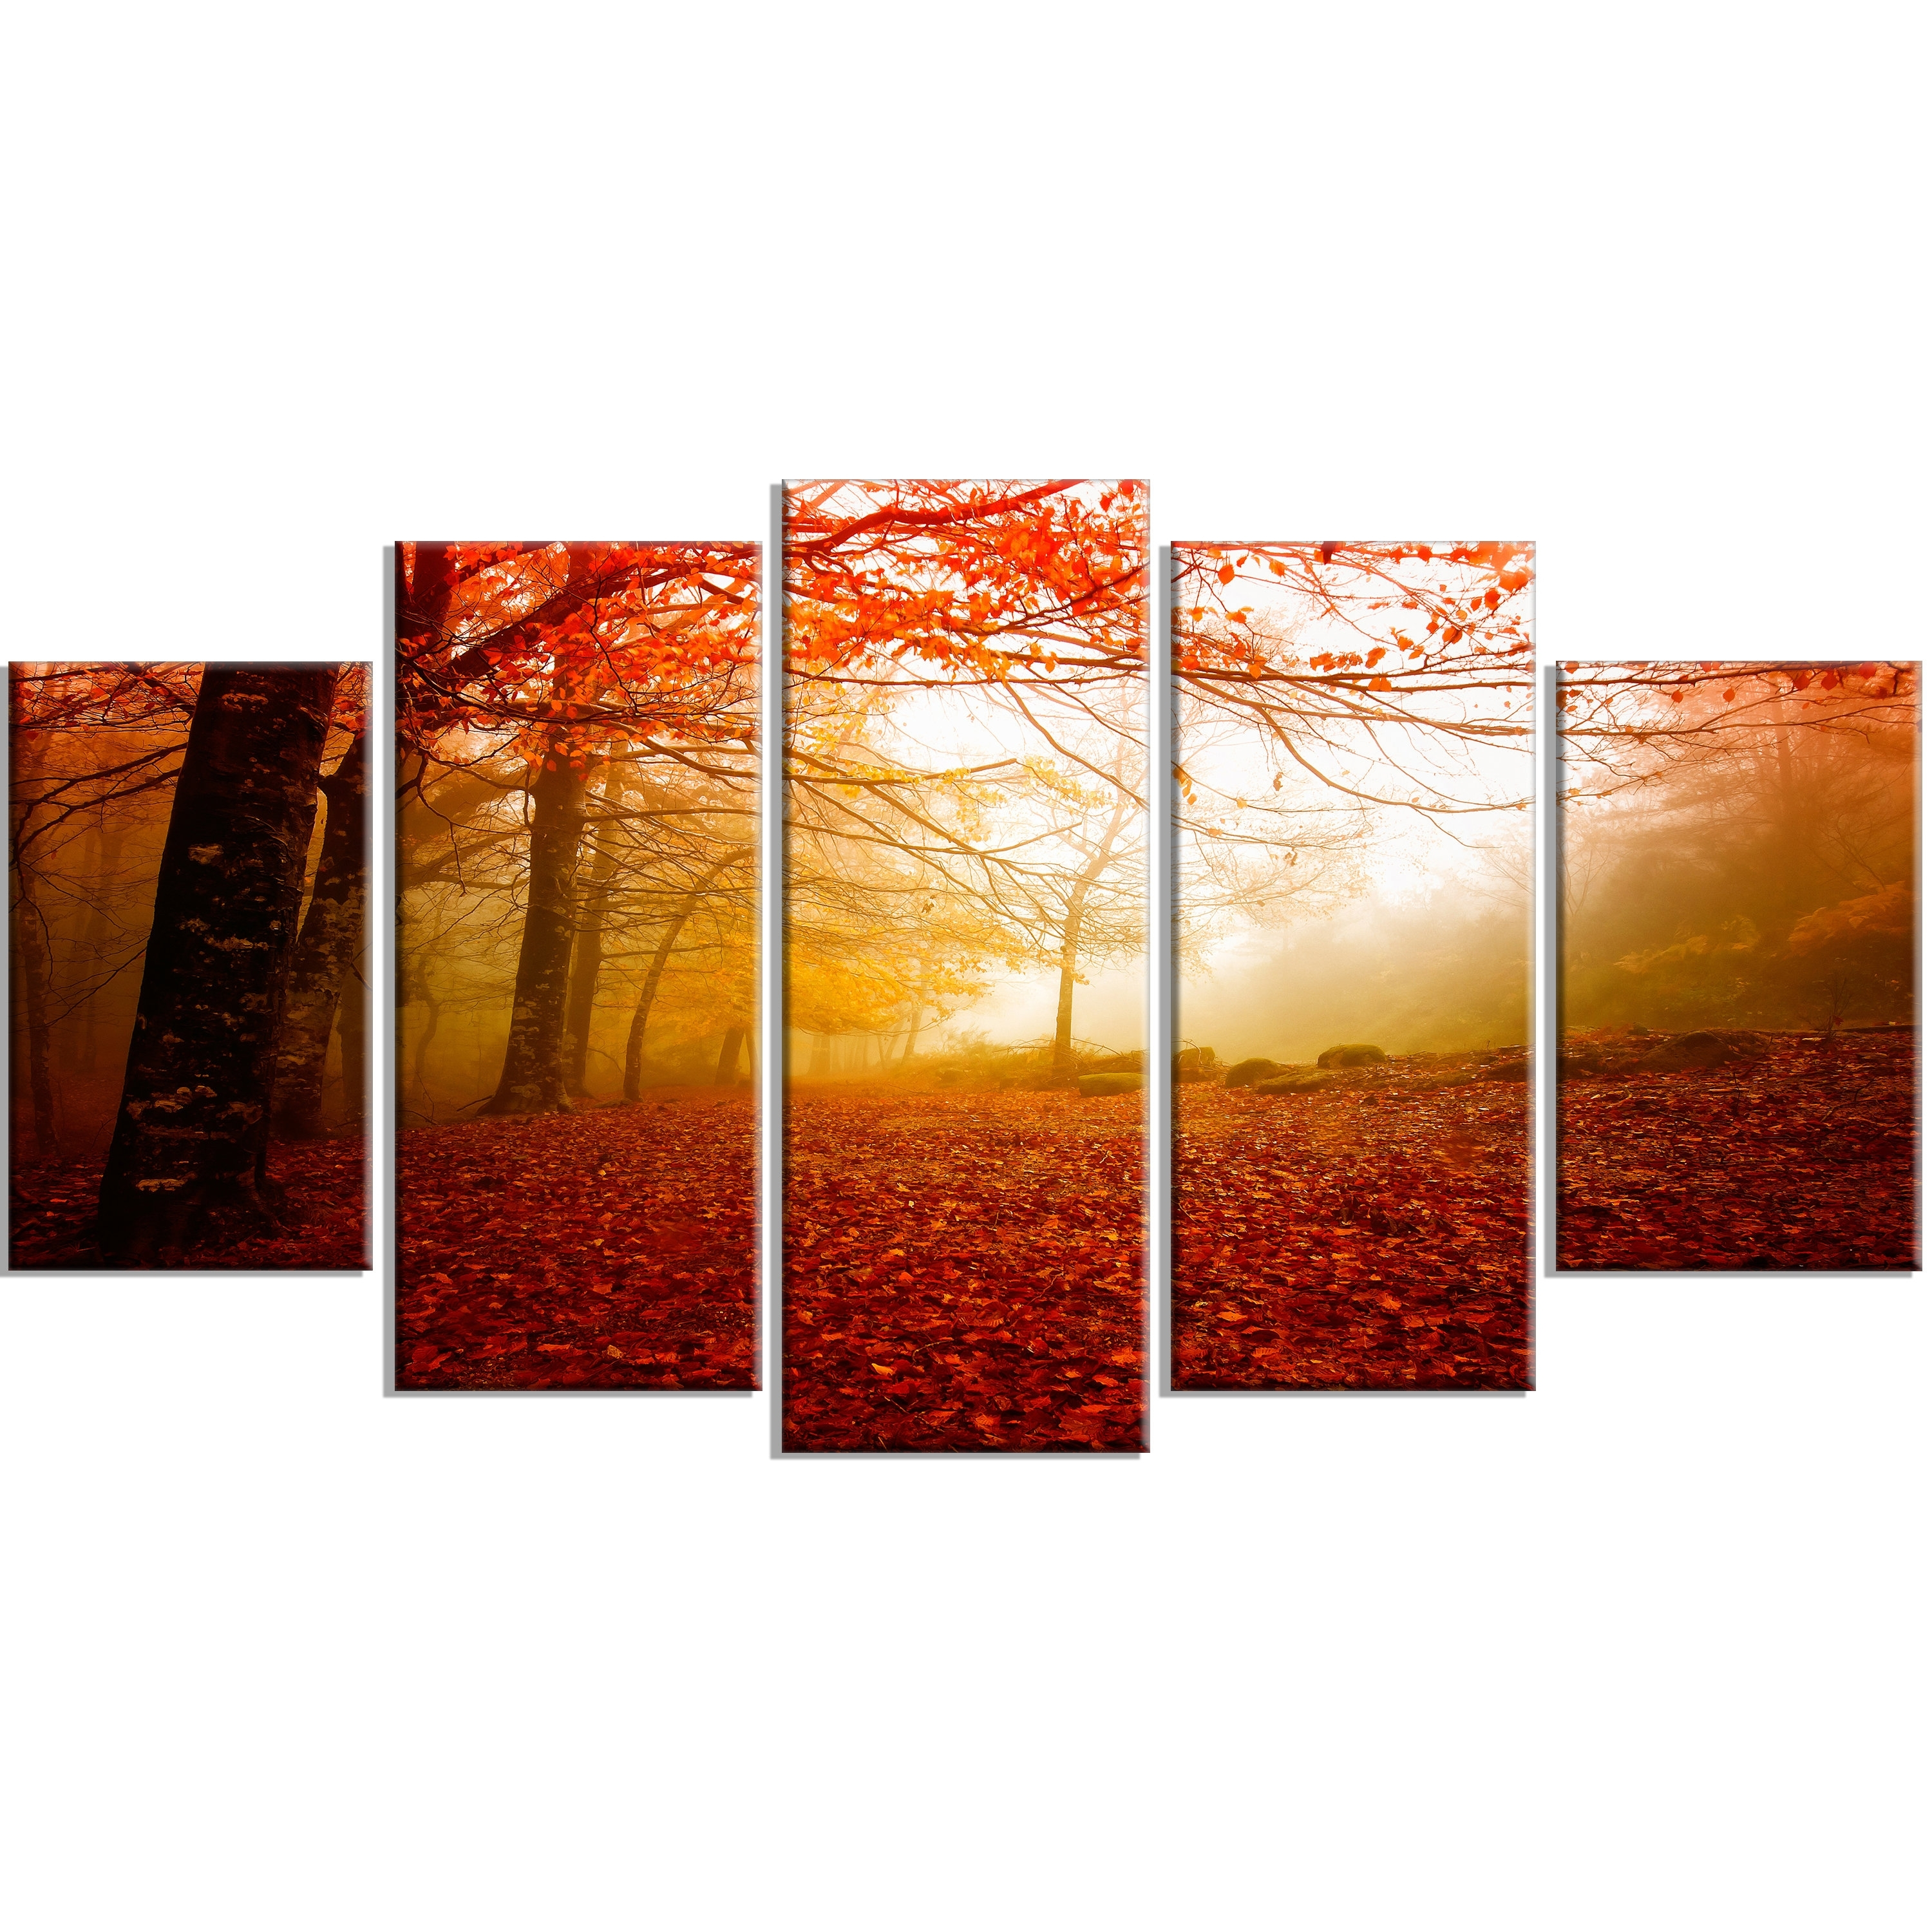 Designart 'yellow Sun Rays In Red Forest' 5 Piece Wall Art On Pertaining To 5 Piece Wall Art Canvas (View 14 of 20)